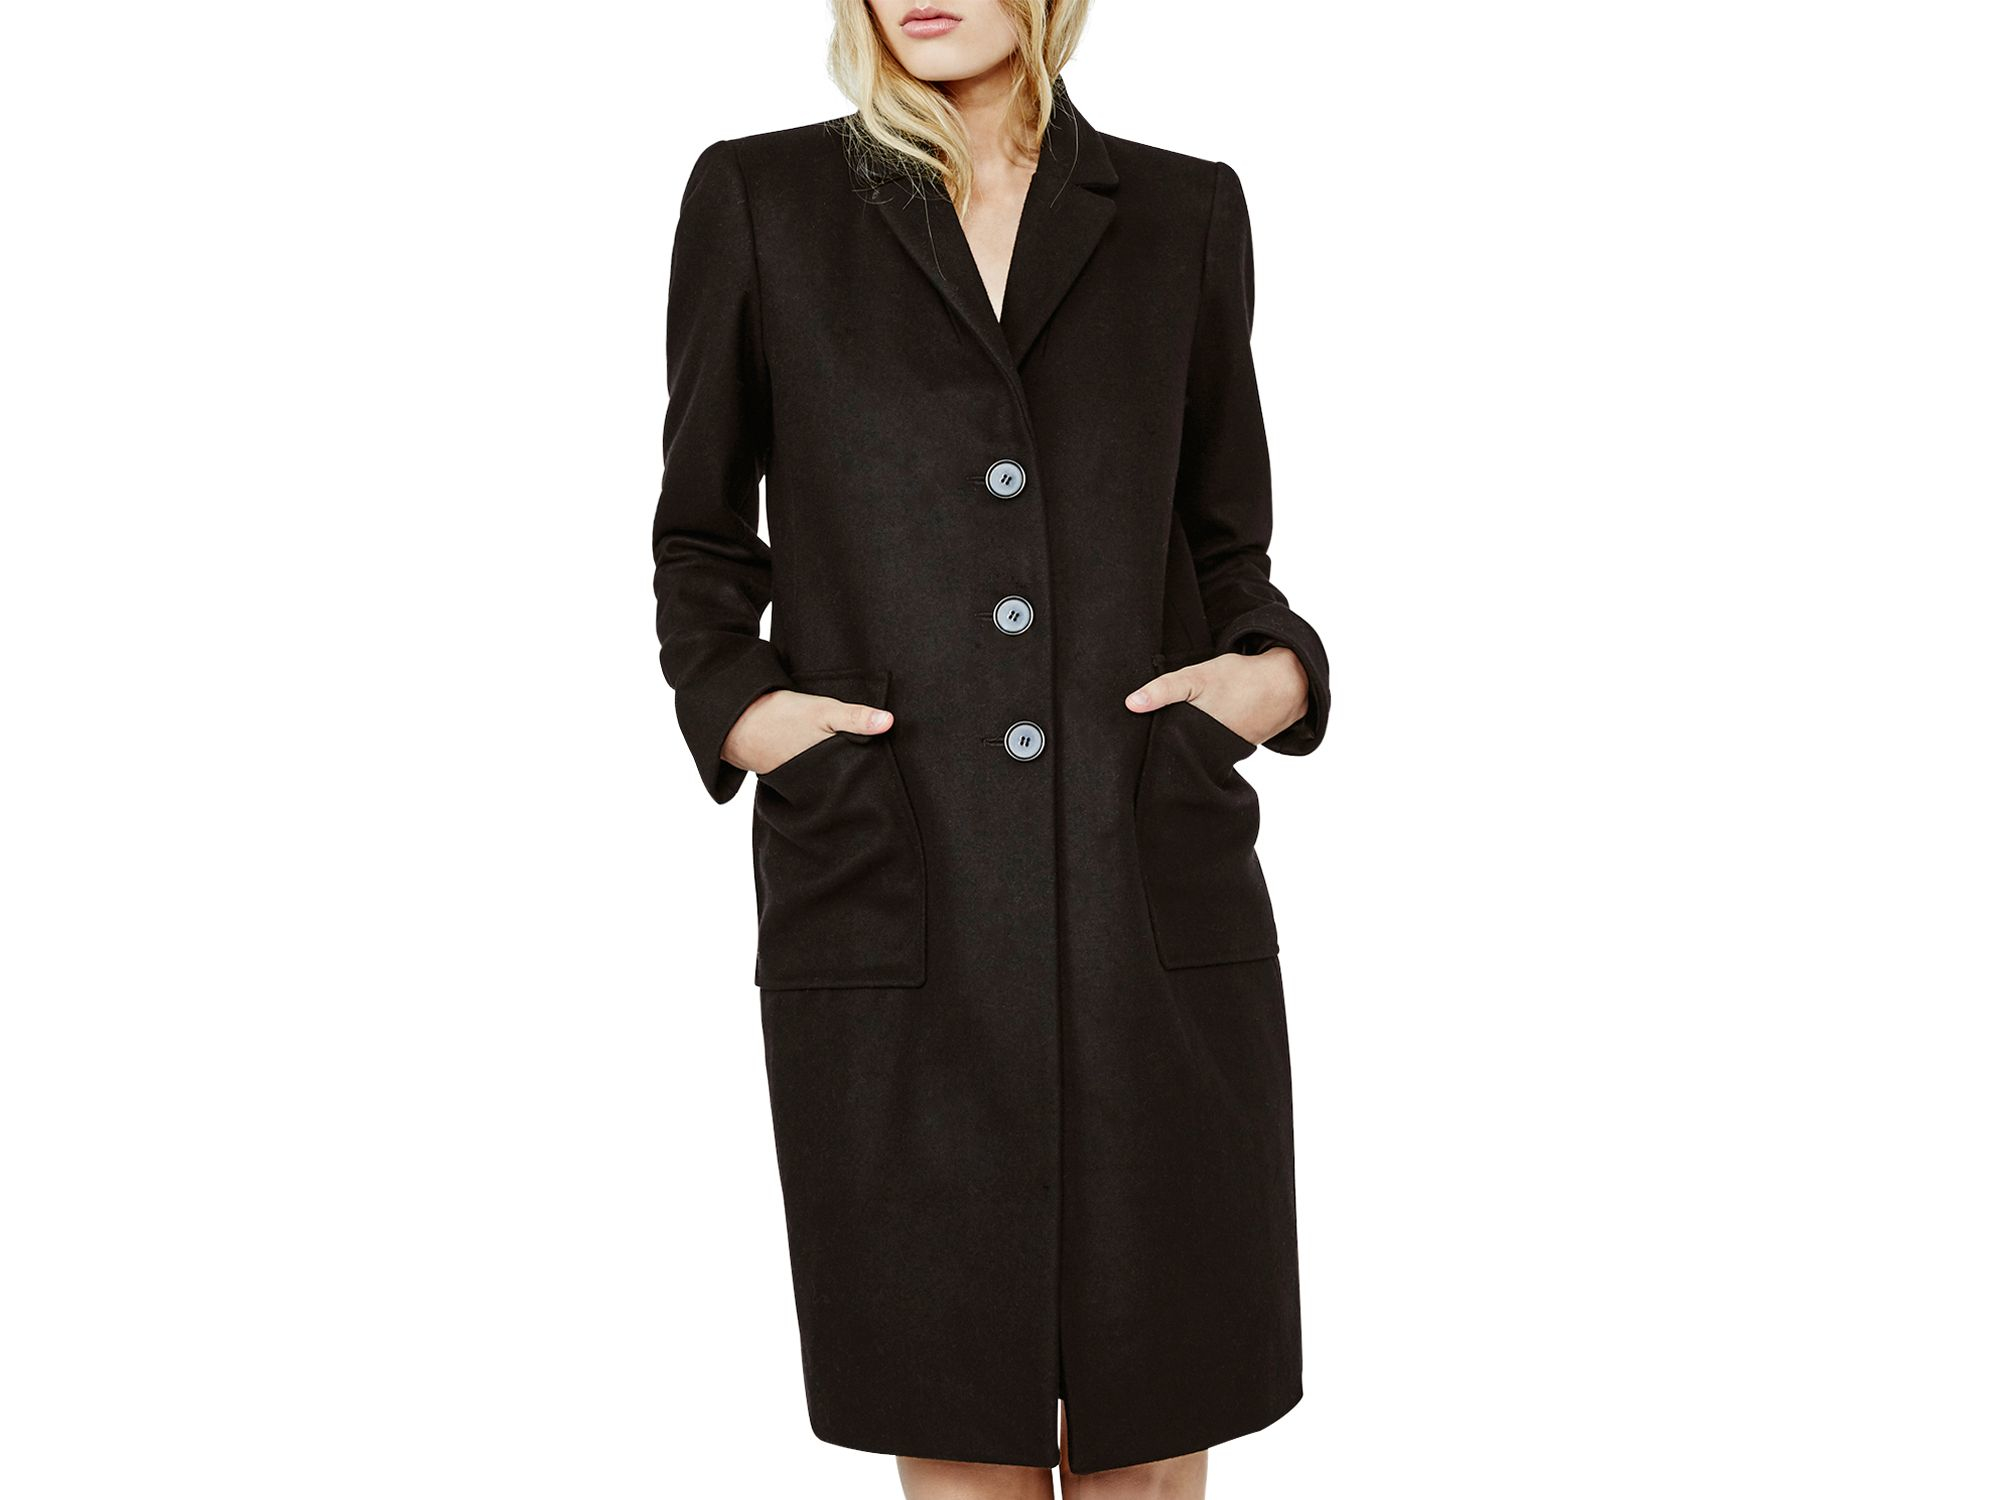 Maje Grakim Wool Coat in Black | Lyst